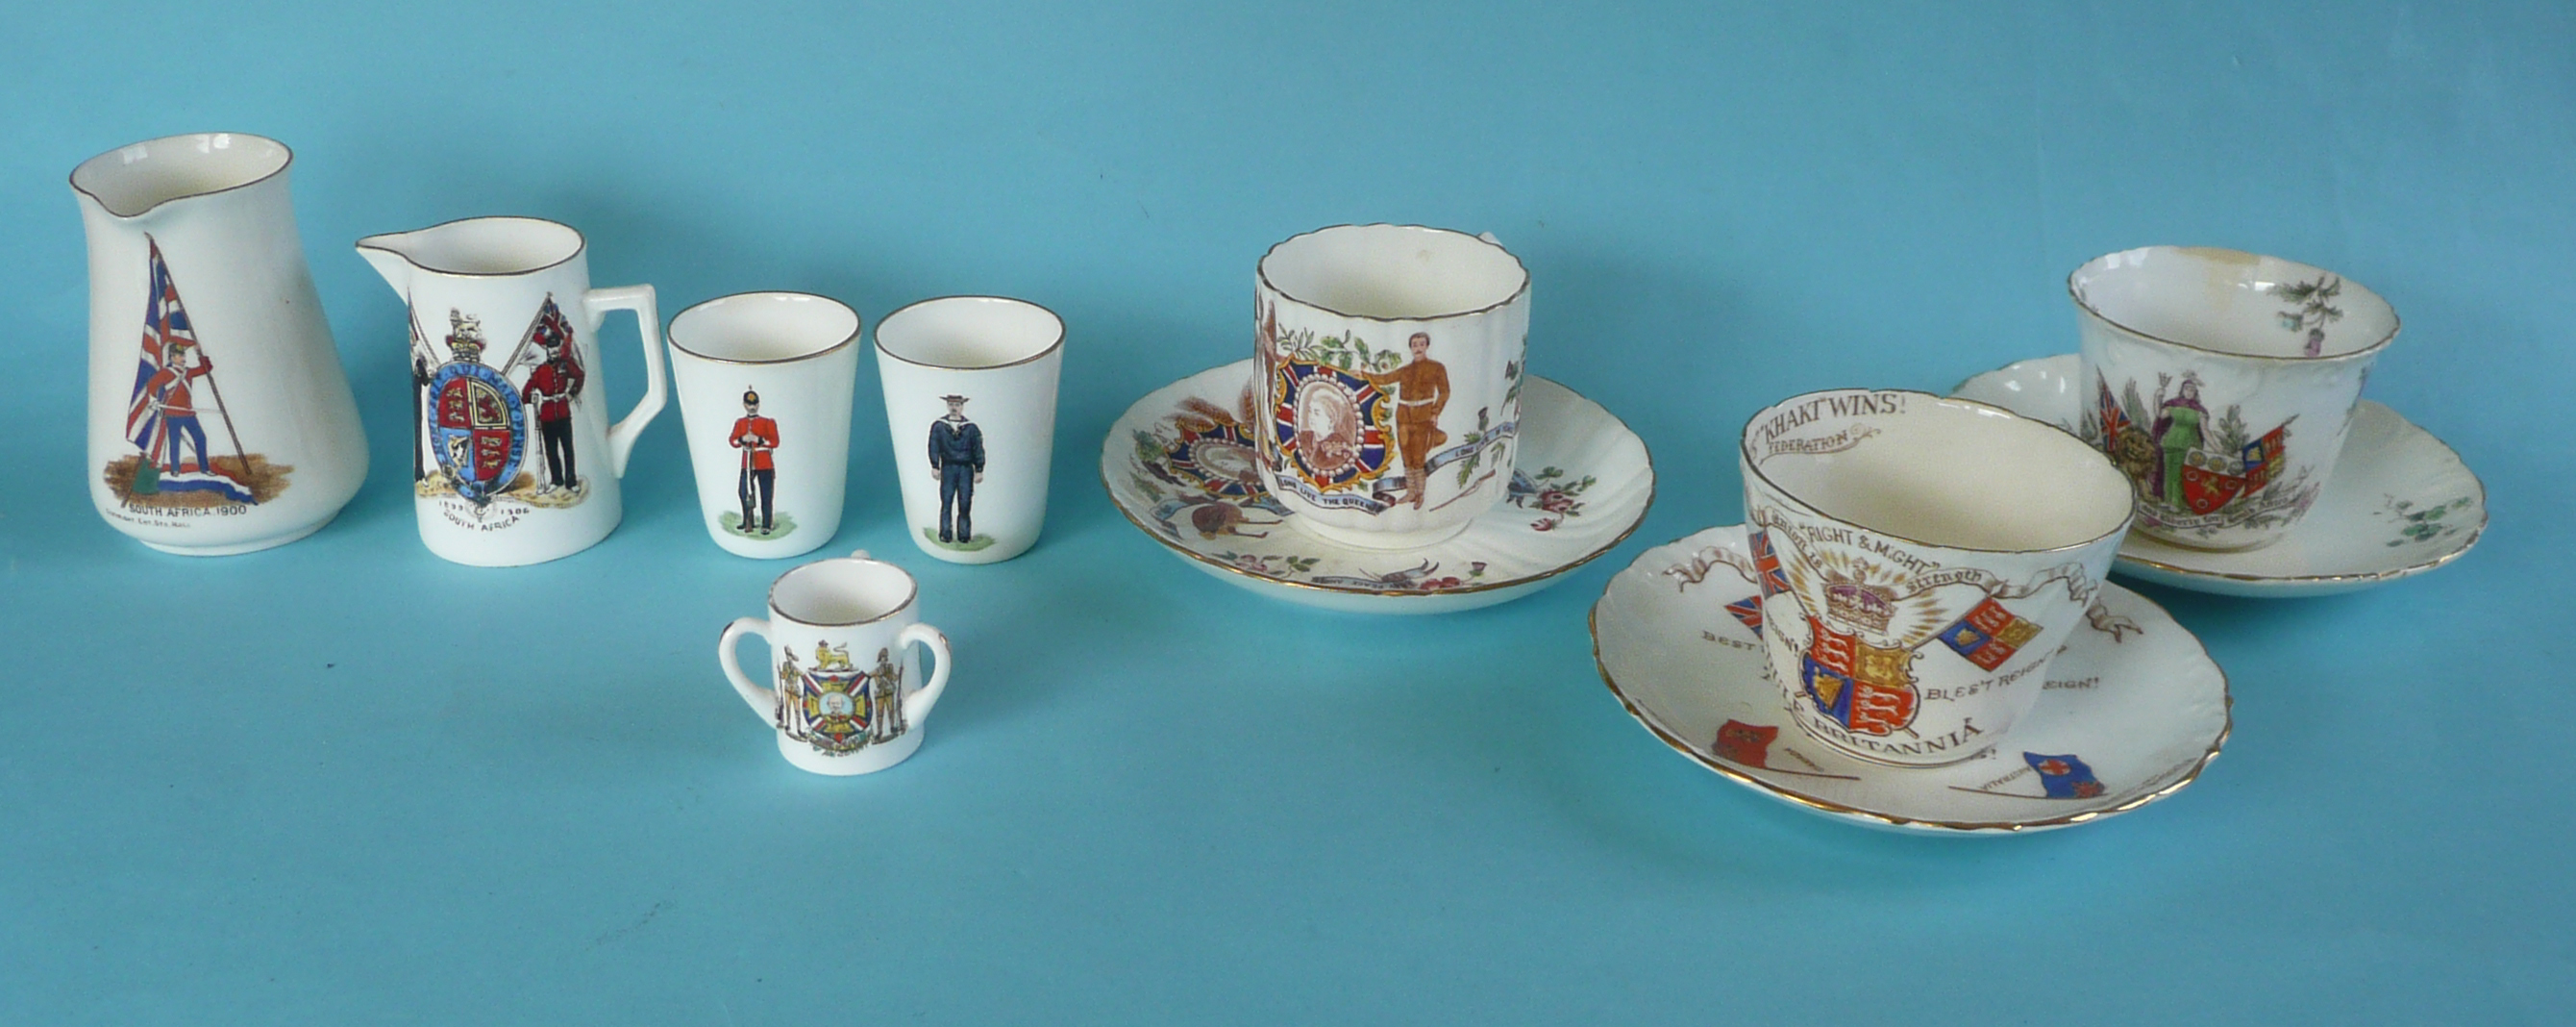 Lot 51 - Boer War: two small jugs, a pair of miniature beakers, a miniature Foley tyg and three cups and